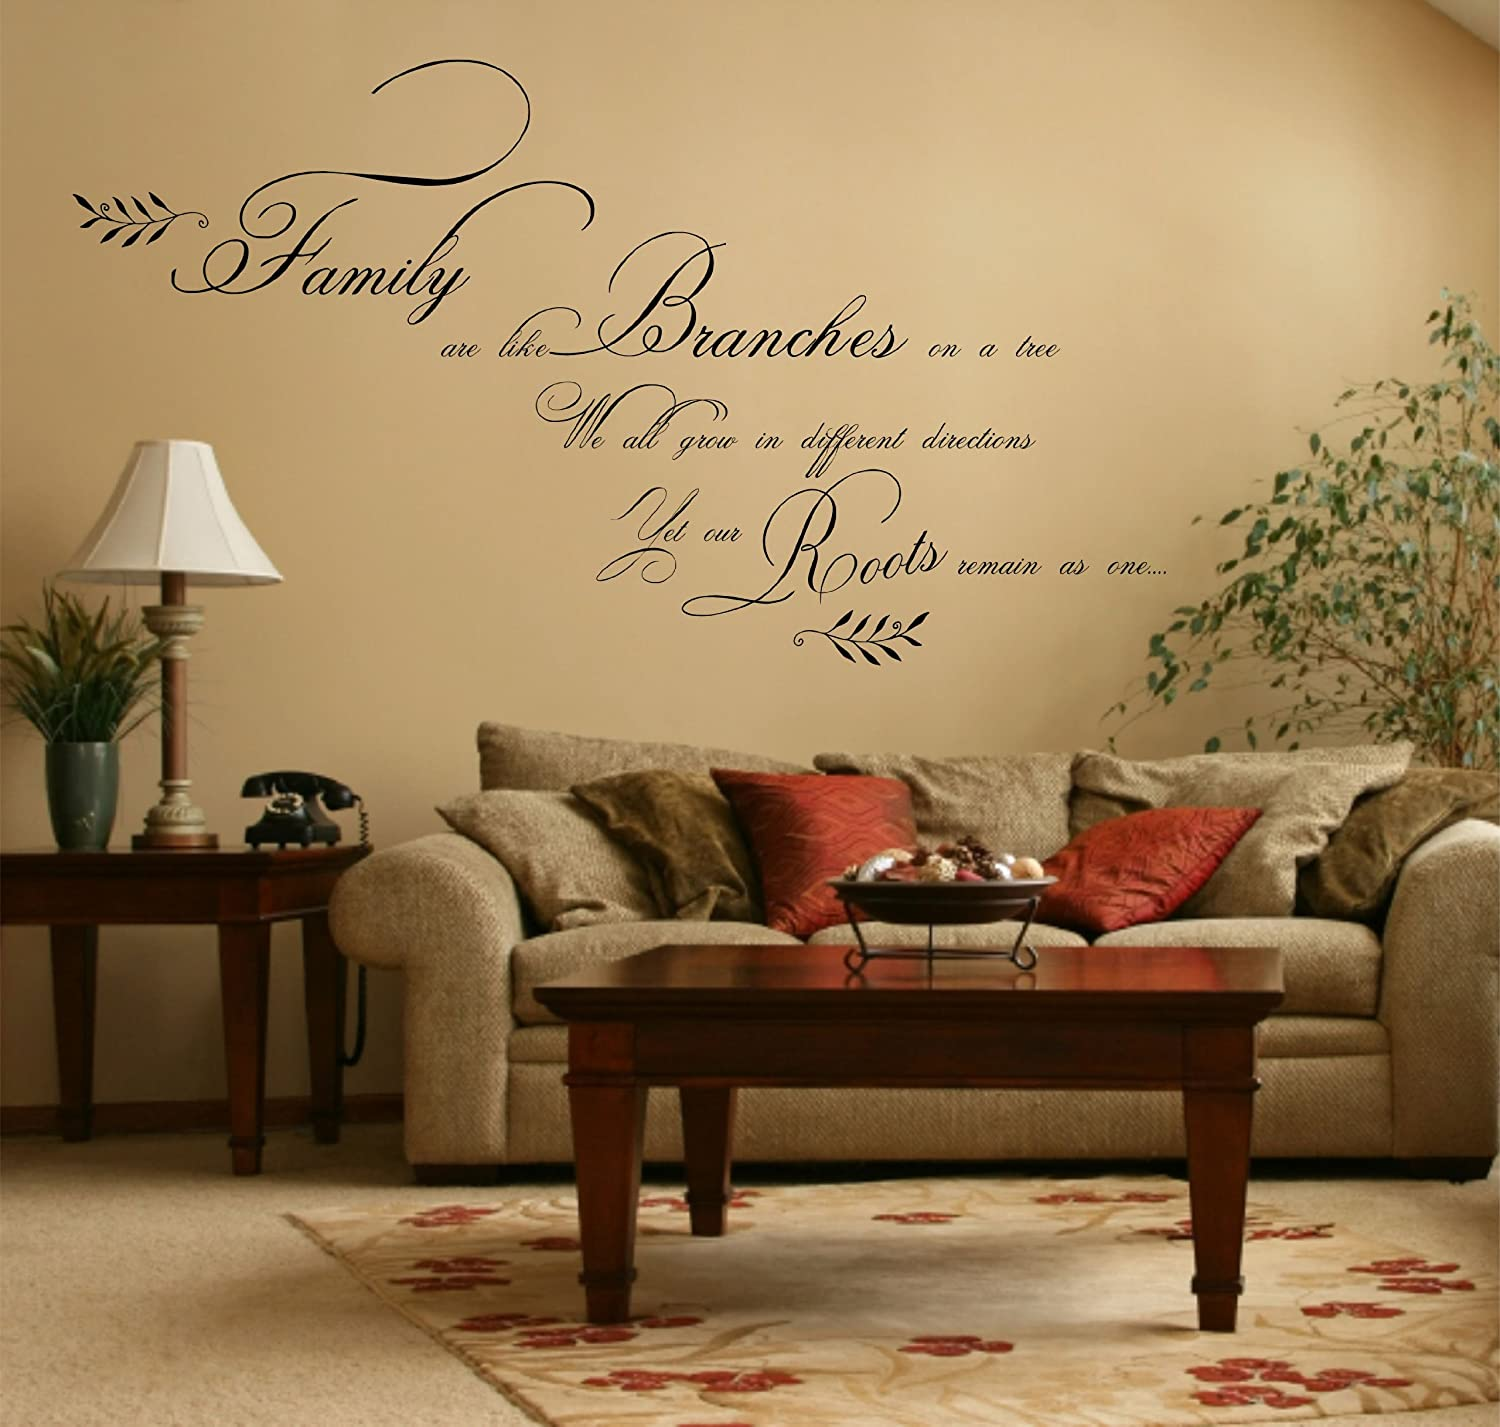 Large Family Quote, Vinyl Wall Art Sticker Decal Mural, Bedroom ...